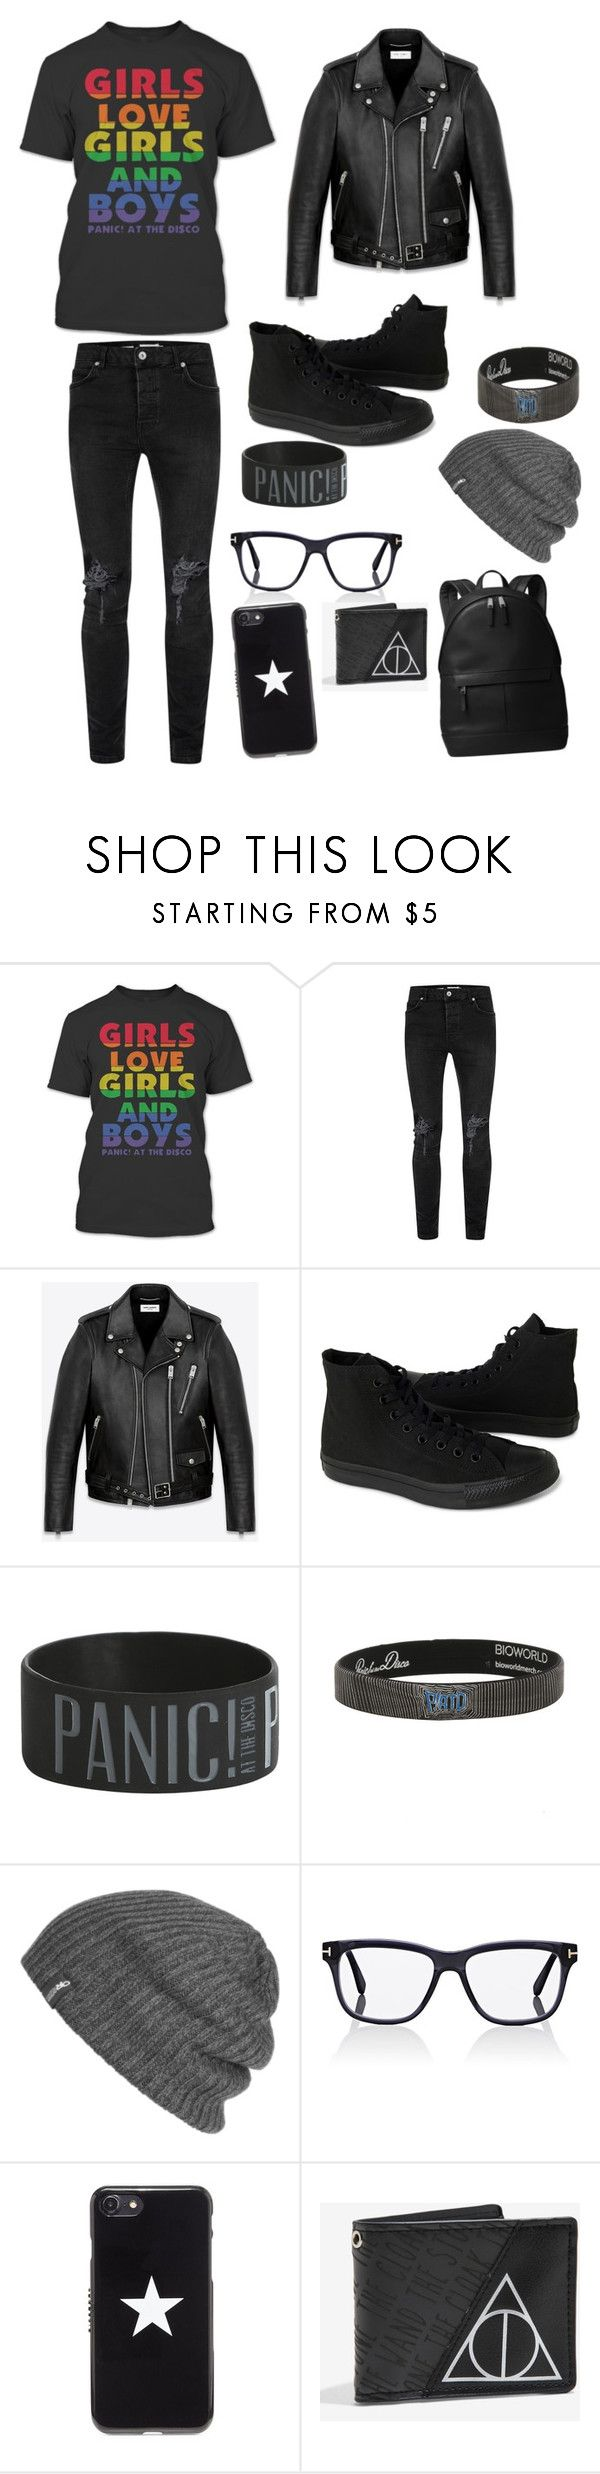 """""""Panic! At the Disco outfits"""" by pushmetohell ❤ liked on Polyvore featuring Topman, Yves Saint Laurent, Converse, Hot Topic, Outdoor Research, Tom Ford, Givenchy, Warner Bros. and Michael Kors"""